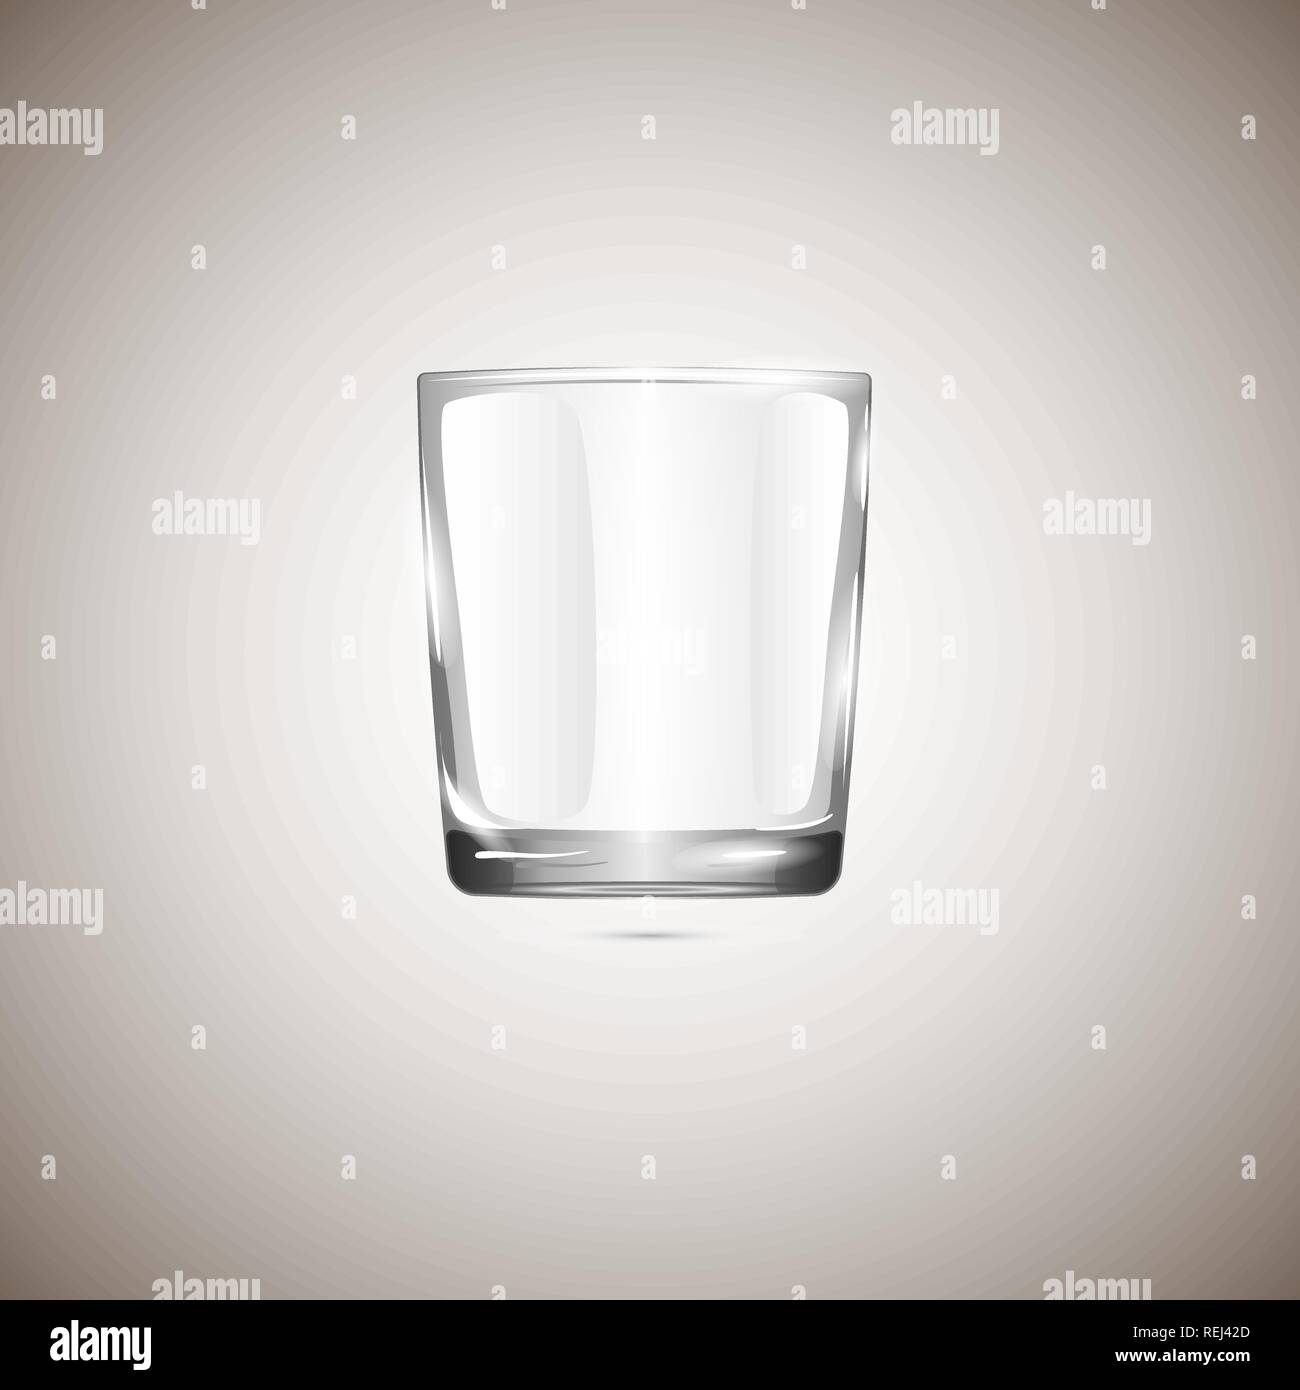 Realistic empty glassful, isolated on beige background. Vector illustration, EPS 10. - Stock Vector